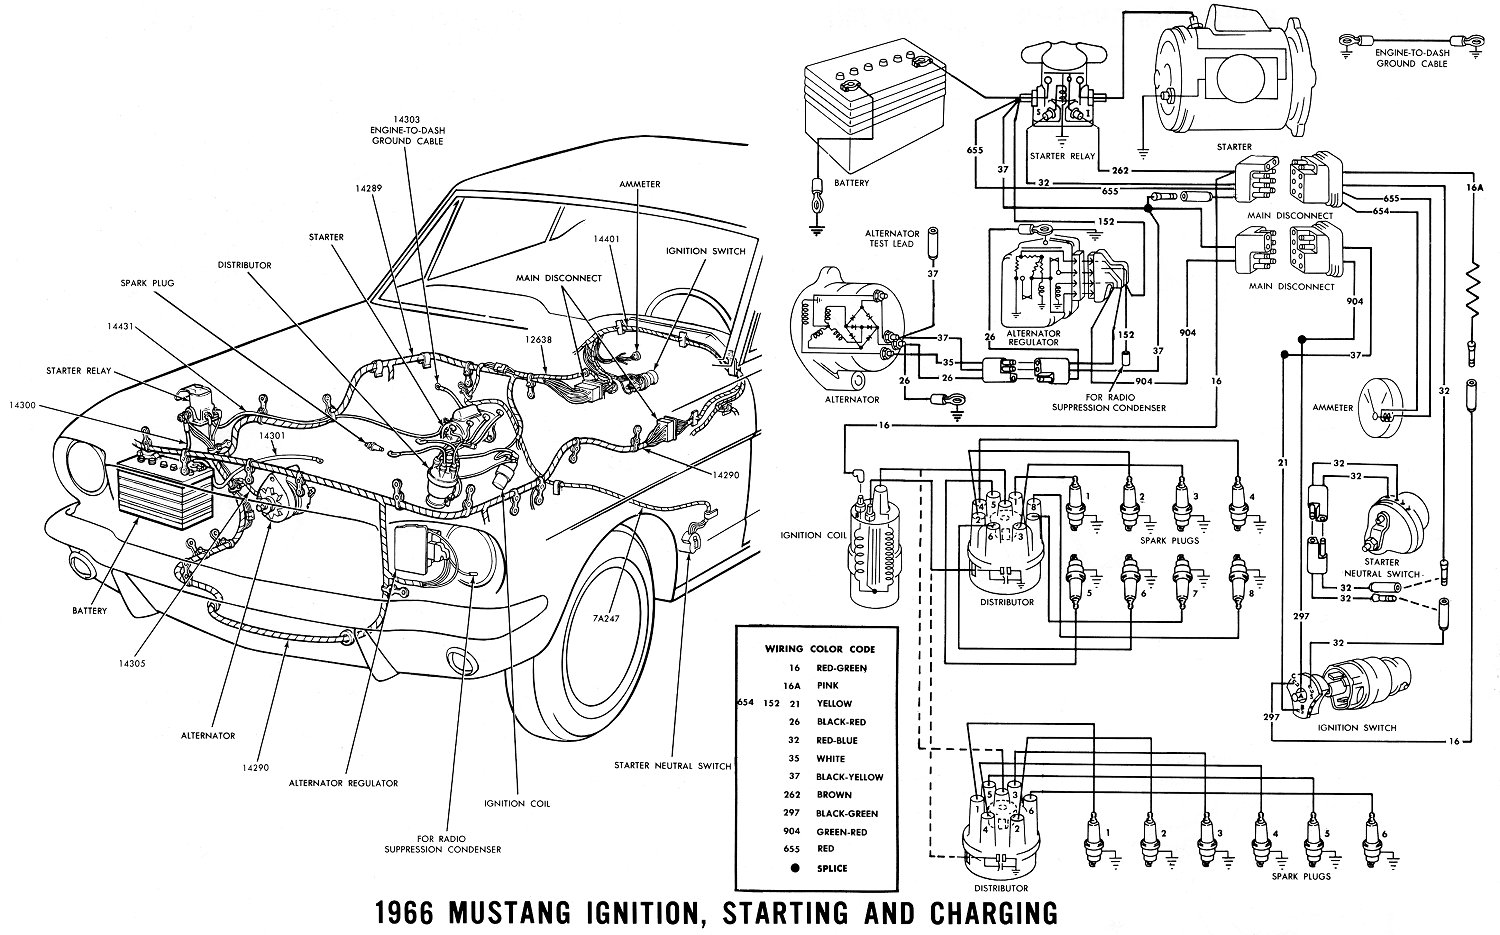 downloadable wiring diagram 1966 ford mustang altornator wiring diagram 1966 ford mustang #1